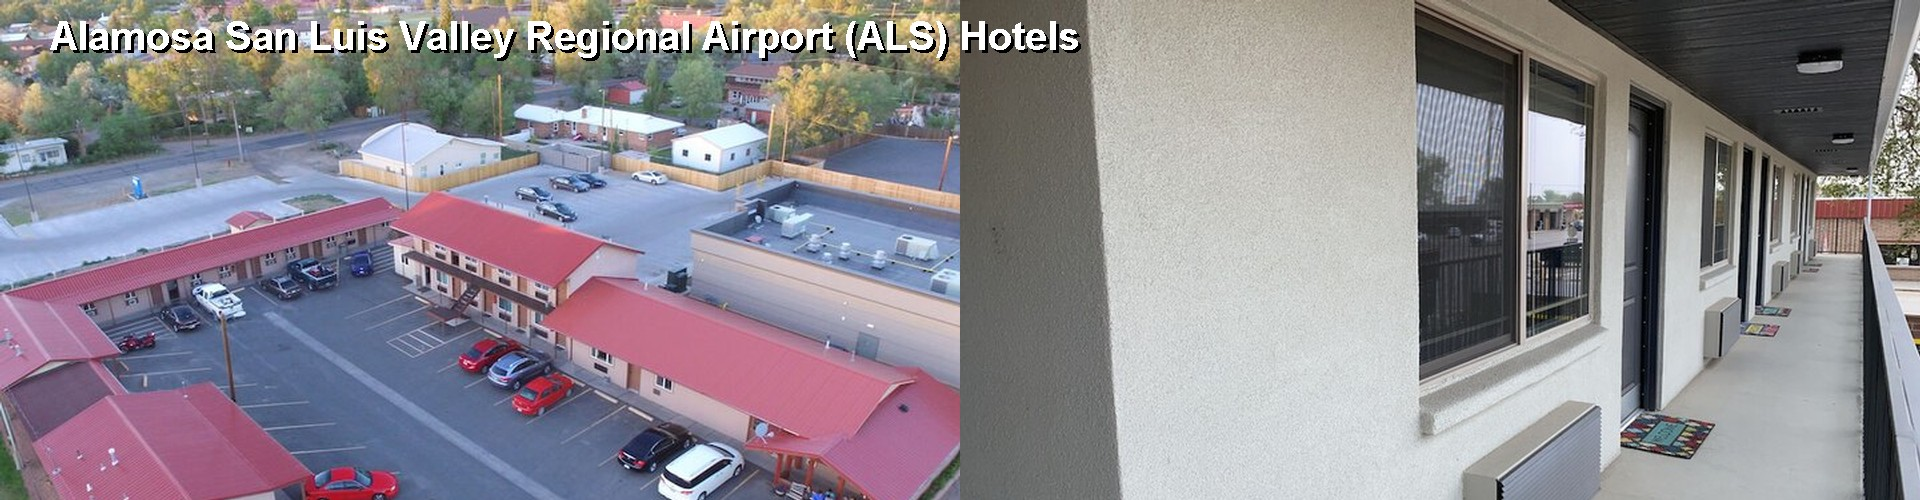 5 Best Hotels near Alamosa San Luis Valley Regional Airport (ALS)